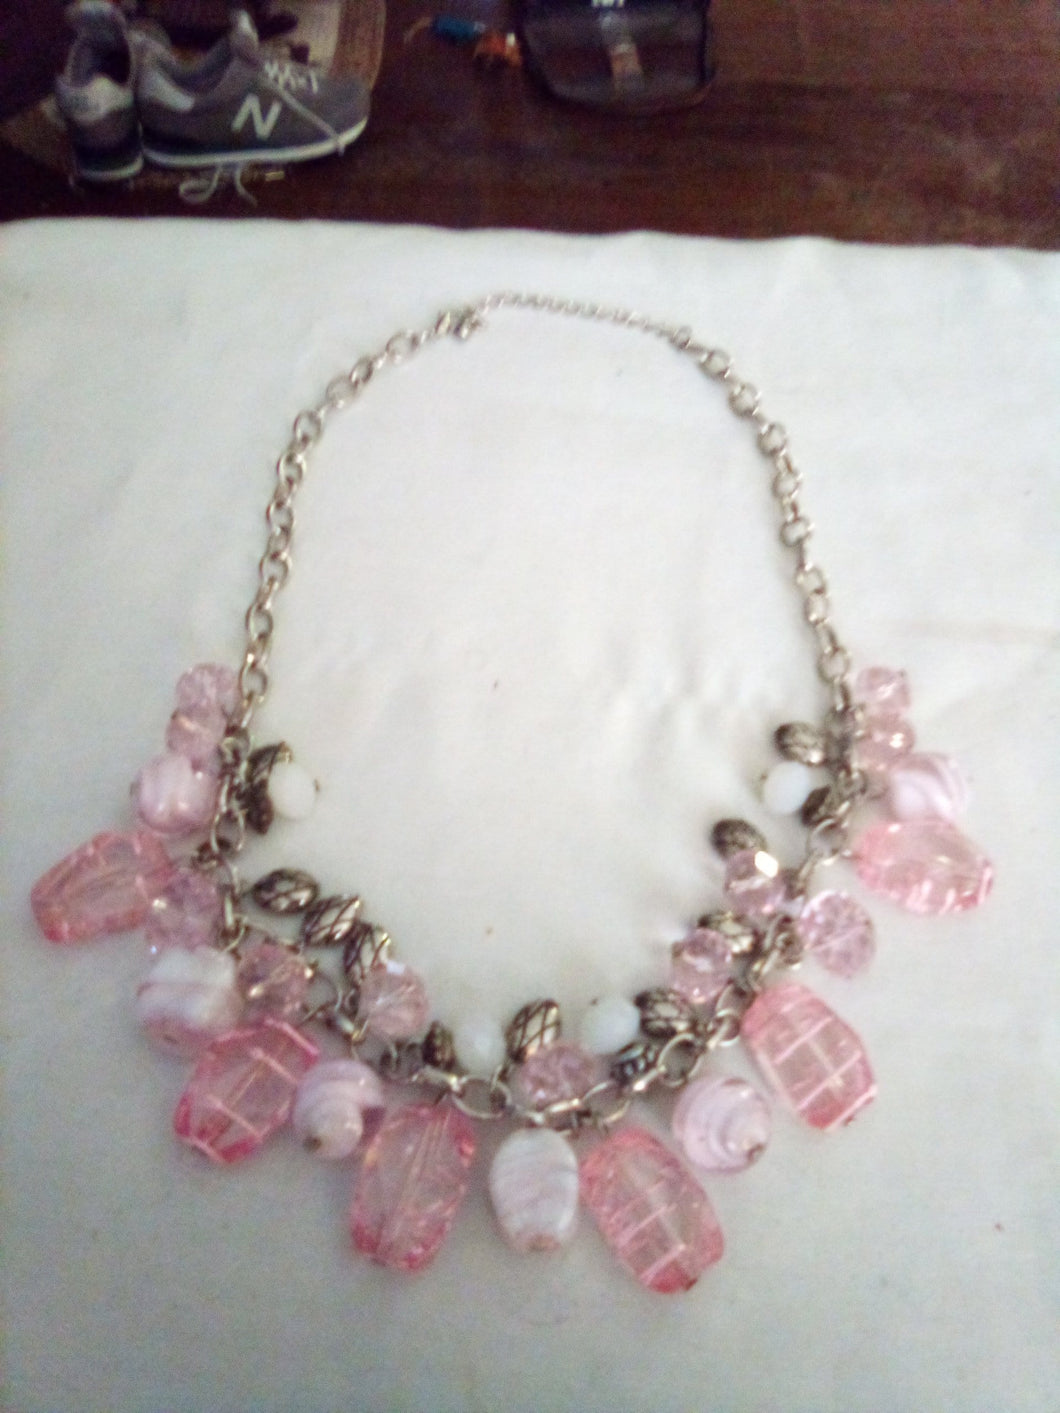 Vintage necklace with pink and white decor - B&P'sringsnthings